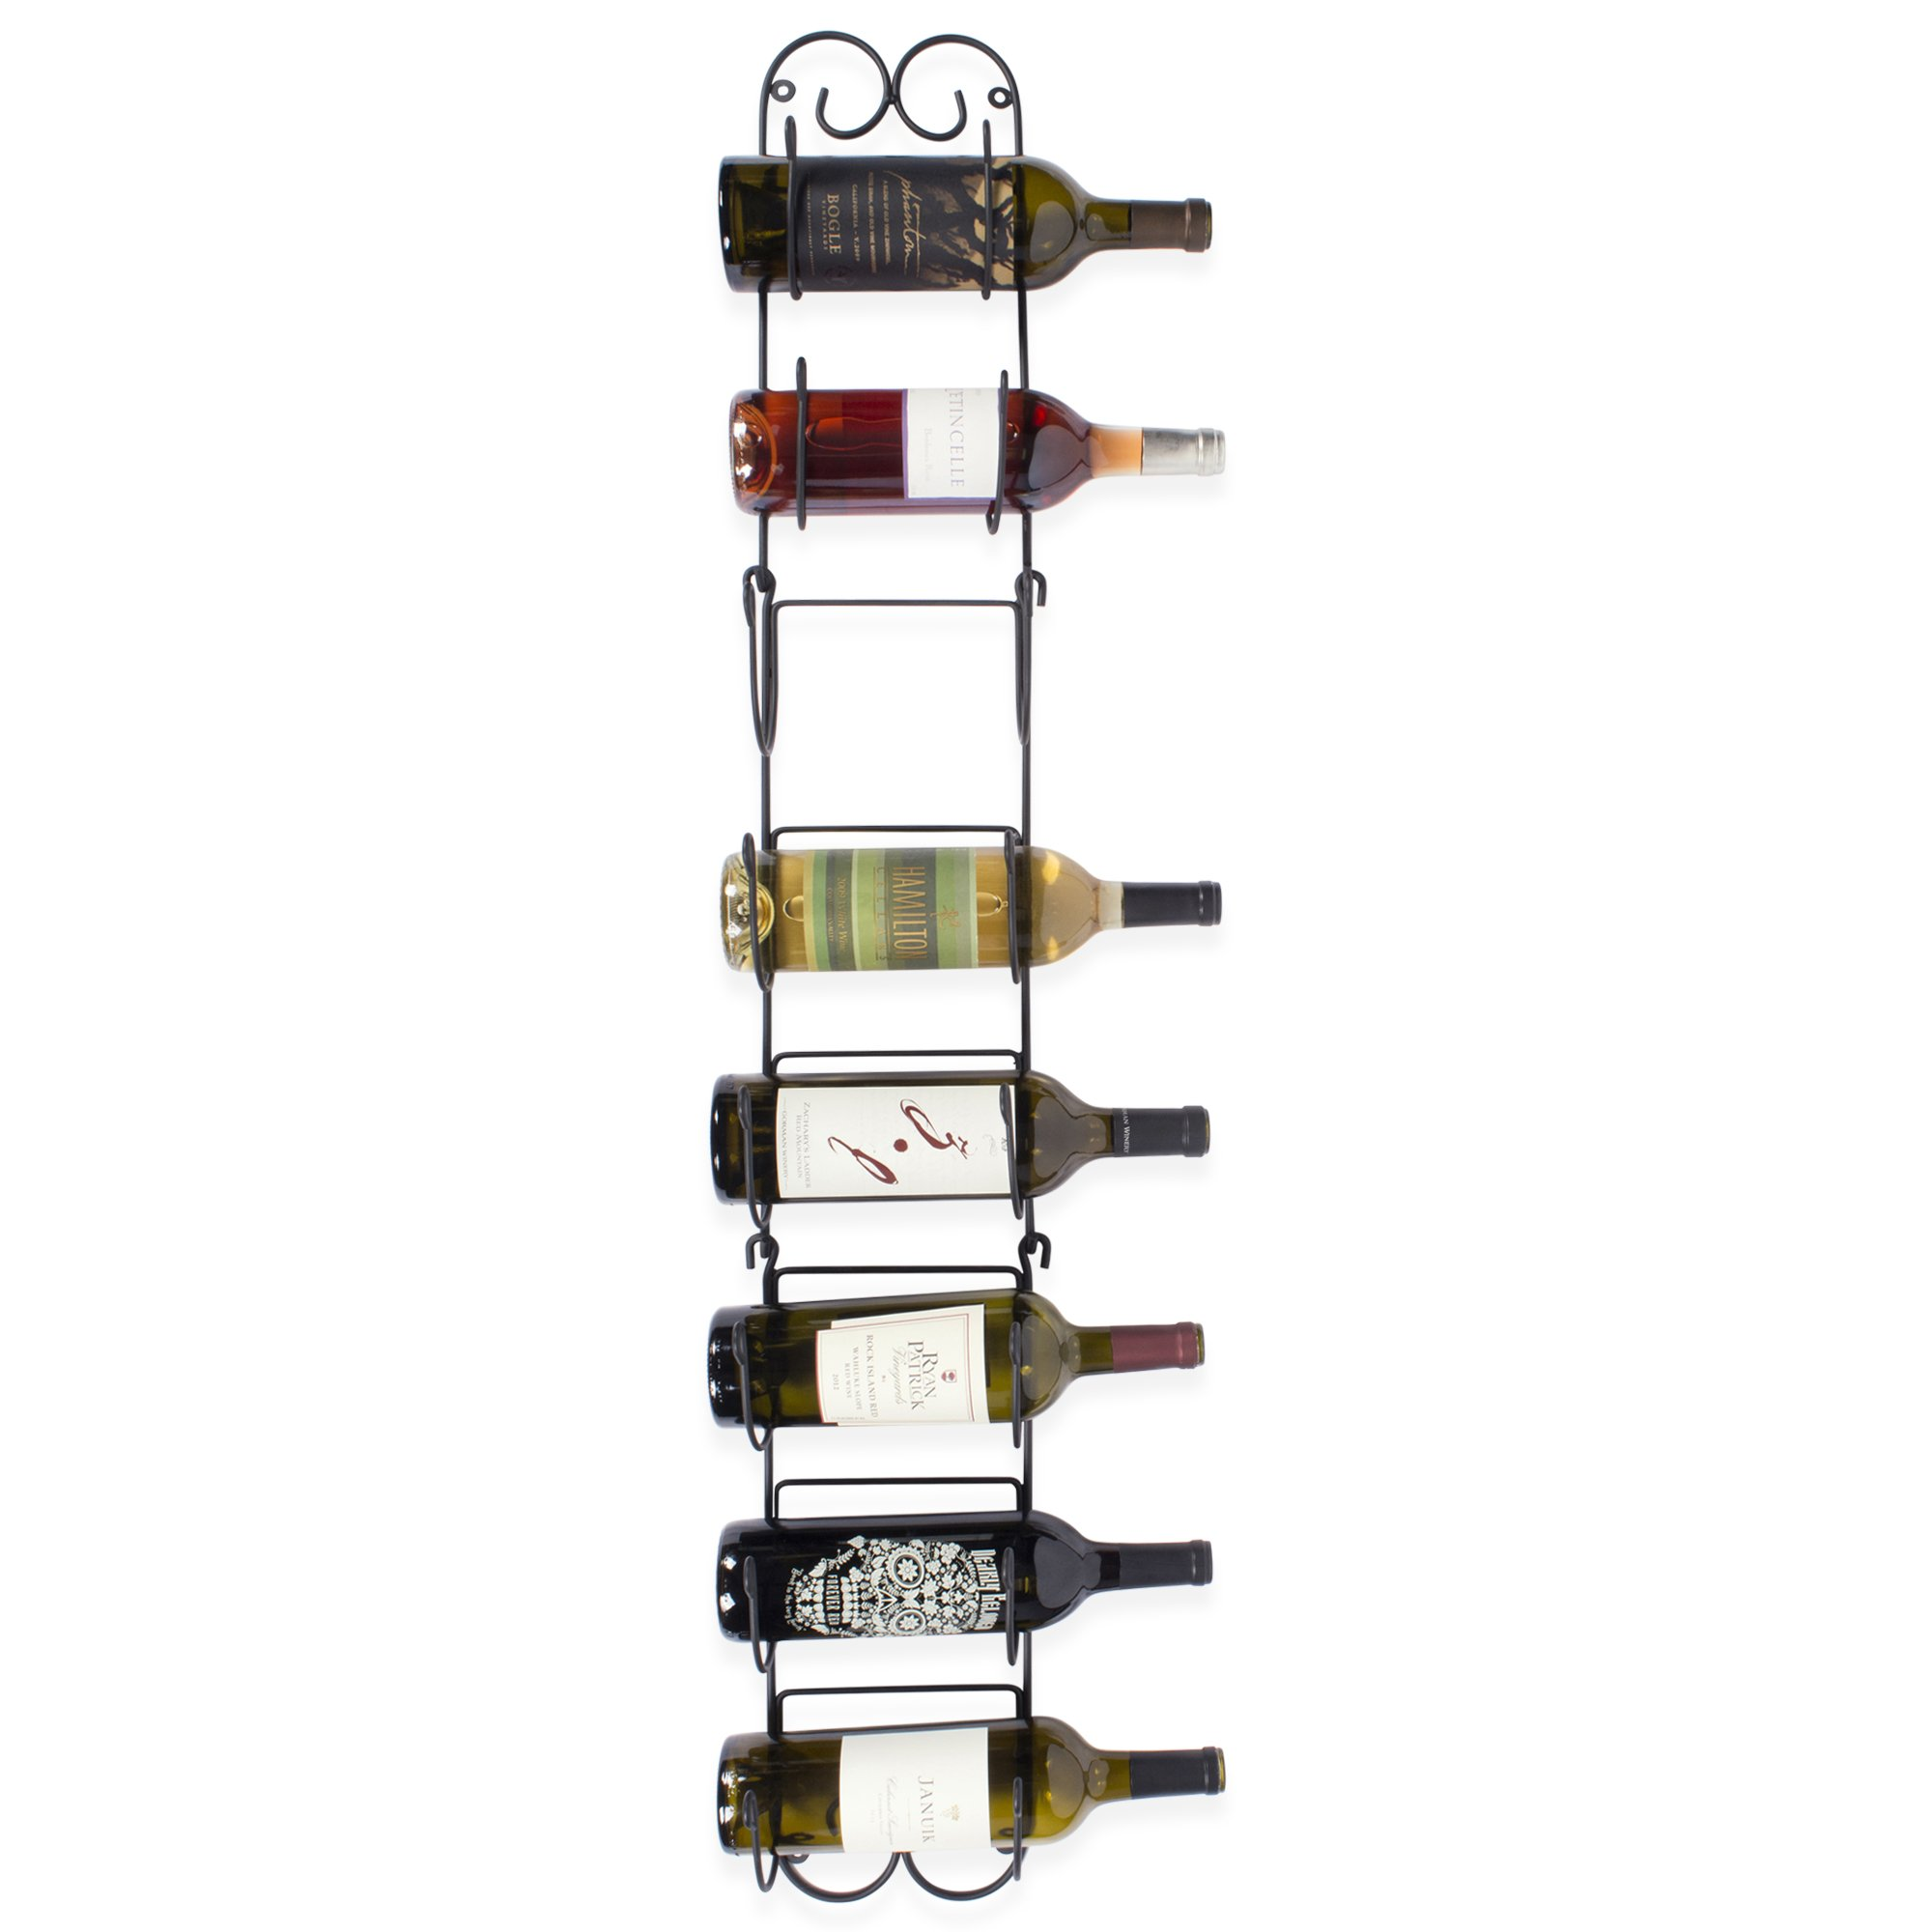 Home Traditions Z01661 Wall Mounted Wine Rack Holds up to 8 Bottles, Large, Black